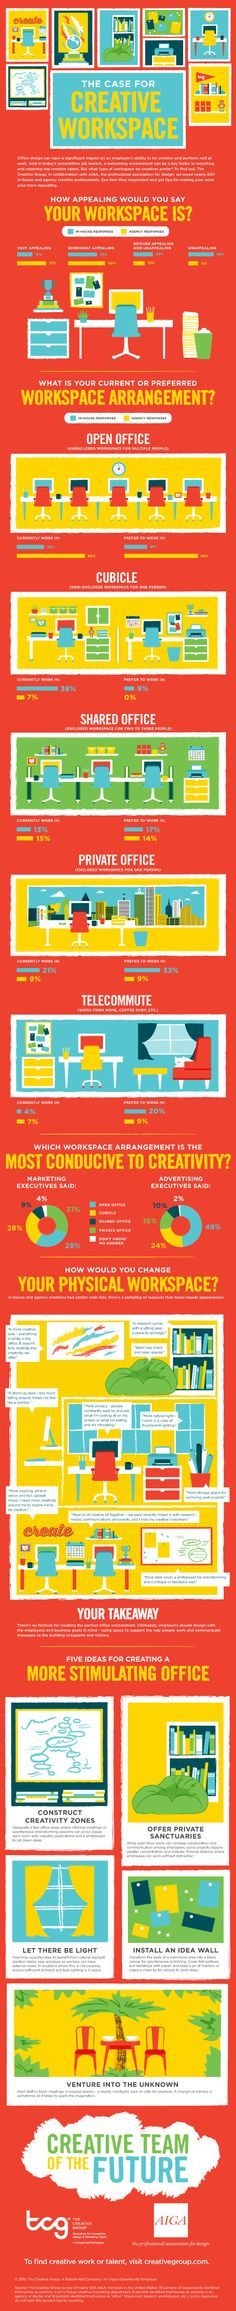 92 best inspiration images on pinterest business branding business infographic data visualisation infographic creative workspaces infographic description great options for creating a creat fandeluxe Choice Image